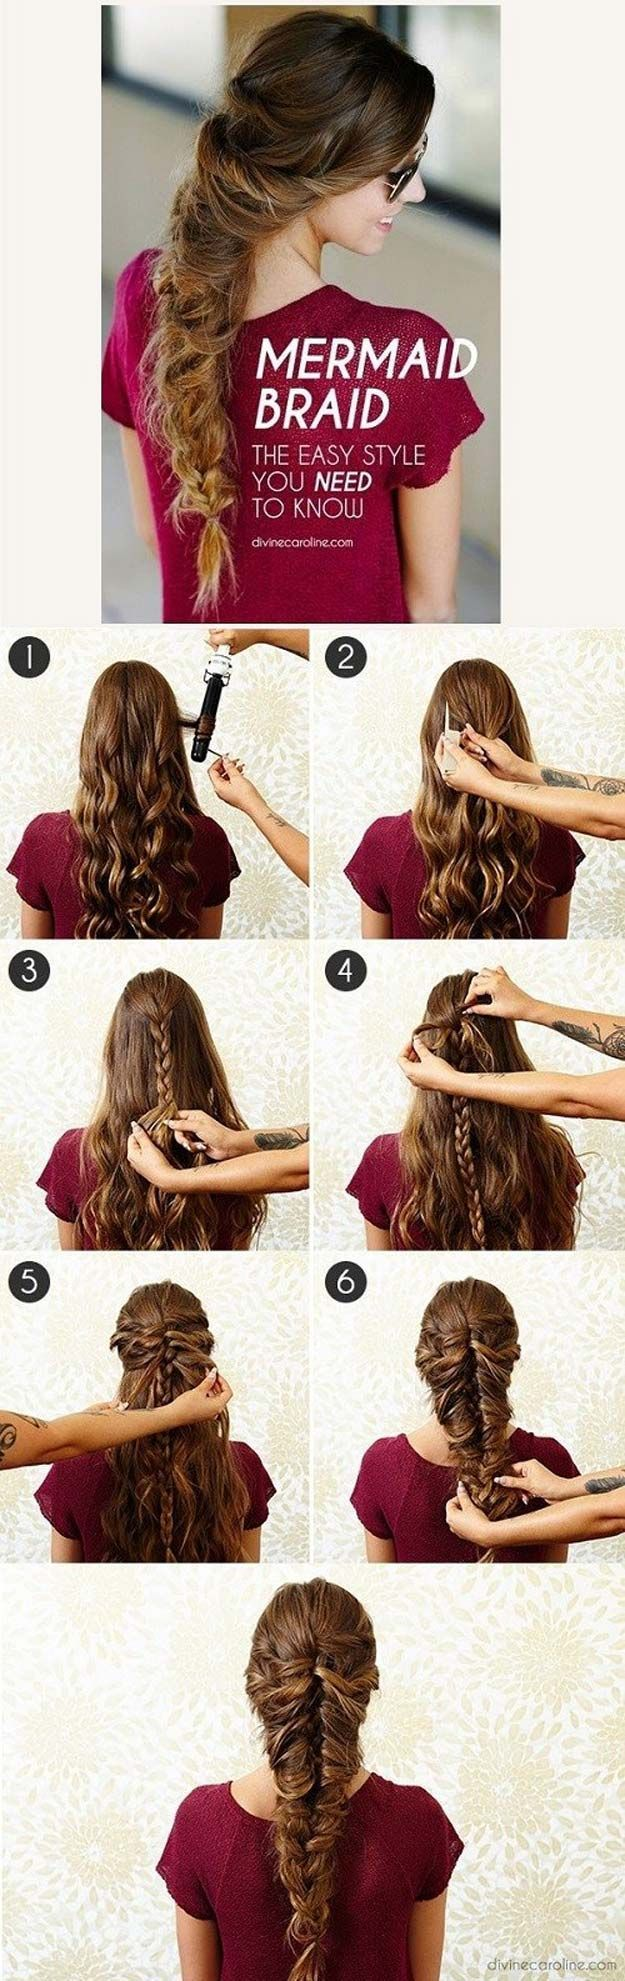 Best Hair Braiding Tutorials - Mermaid Braid - Easy Step by Step Tutorials for B...